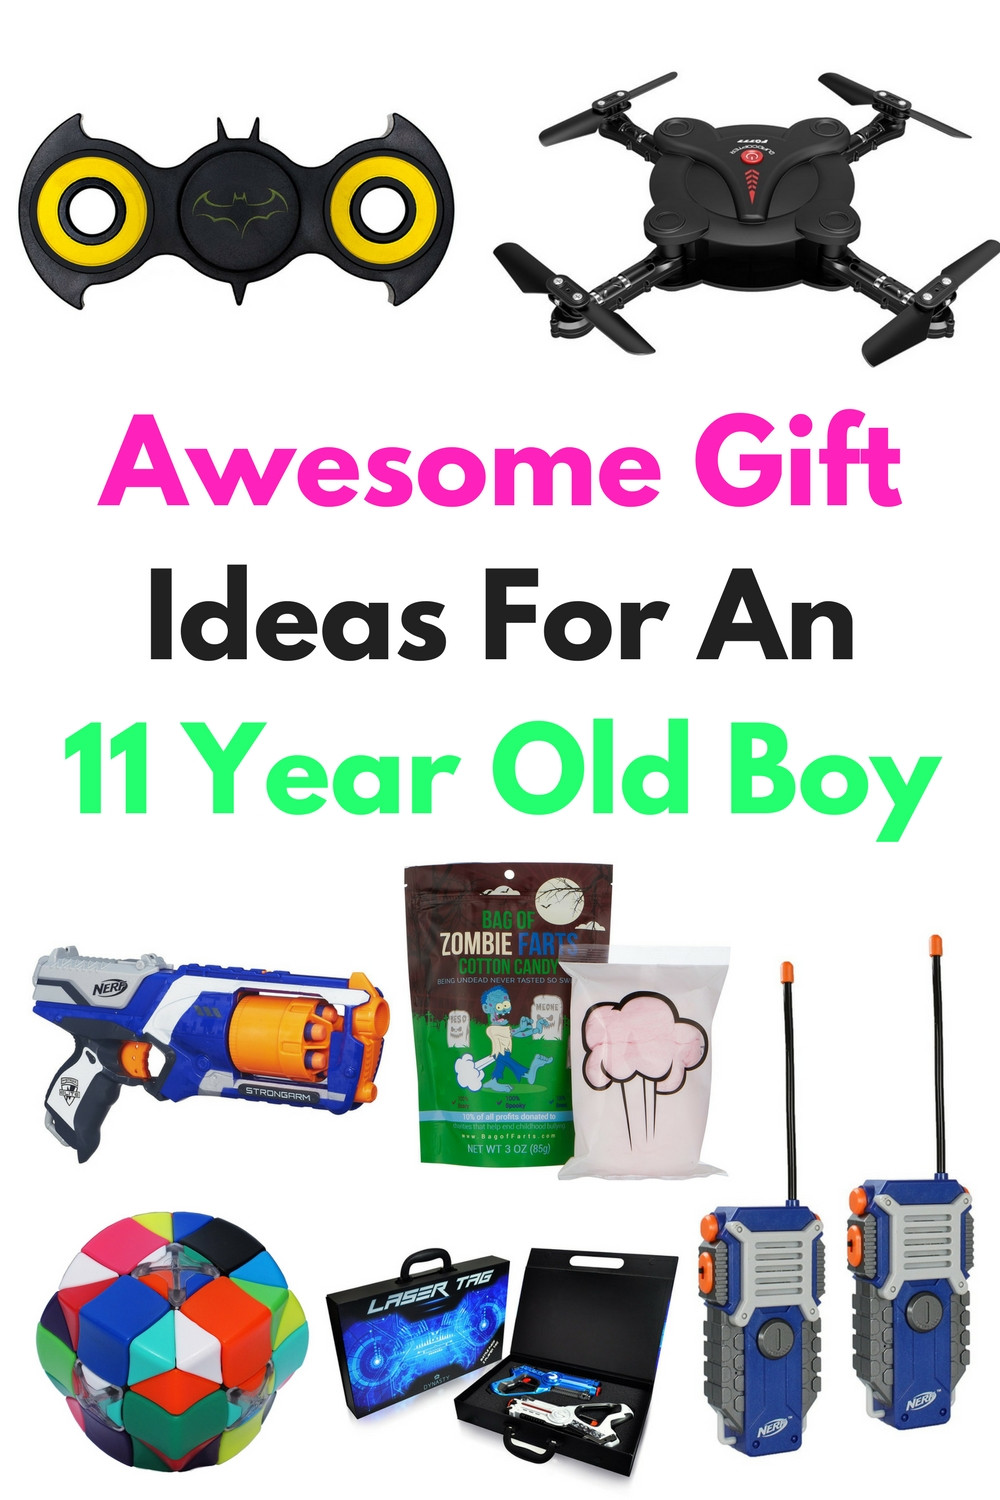 Christmas Gift Ideas For 11 Year Old Boy  Awesome Gift Ideas For An 11 Year Old Boy